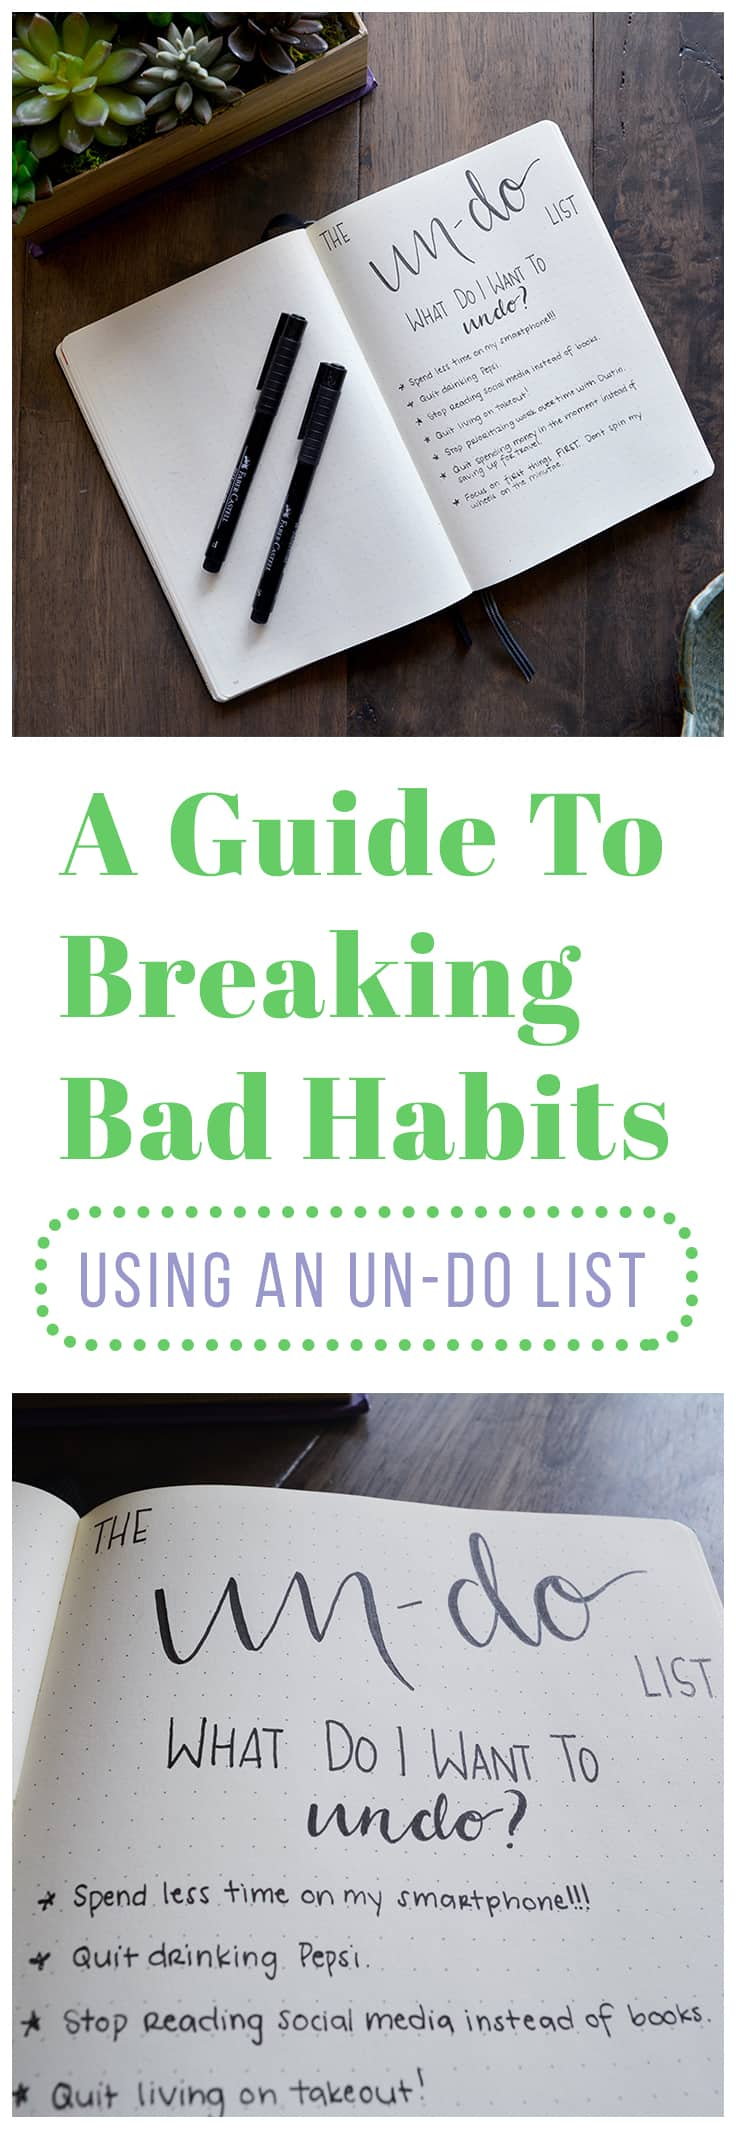 People tend to focus only on creating good habits, but fail to pay attention to their already existing bad habits. This guide will help you tackle you bad habits by showing you how to: 1.	Understand your triggers.  2.	Start small.  3.	Change your environment.  4.	Develop a substitute plan.  5.	Get support. 6.	Plan for failure.